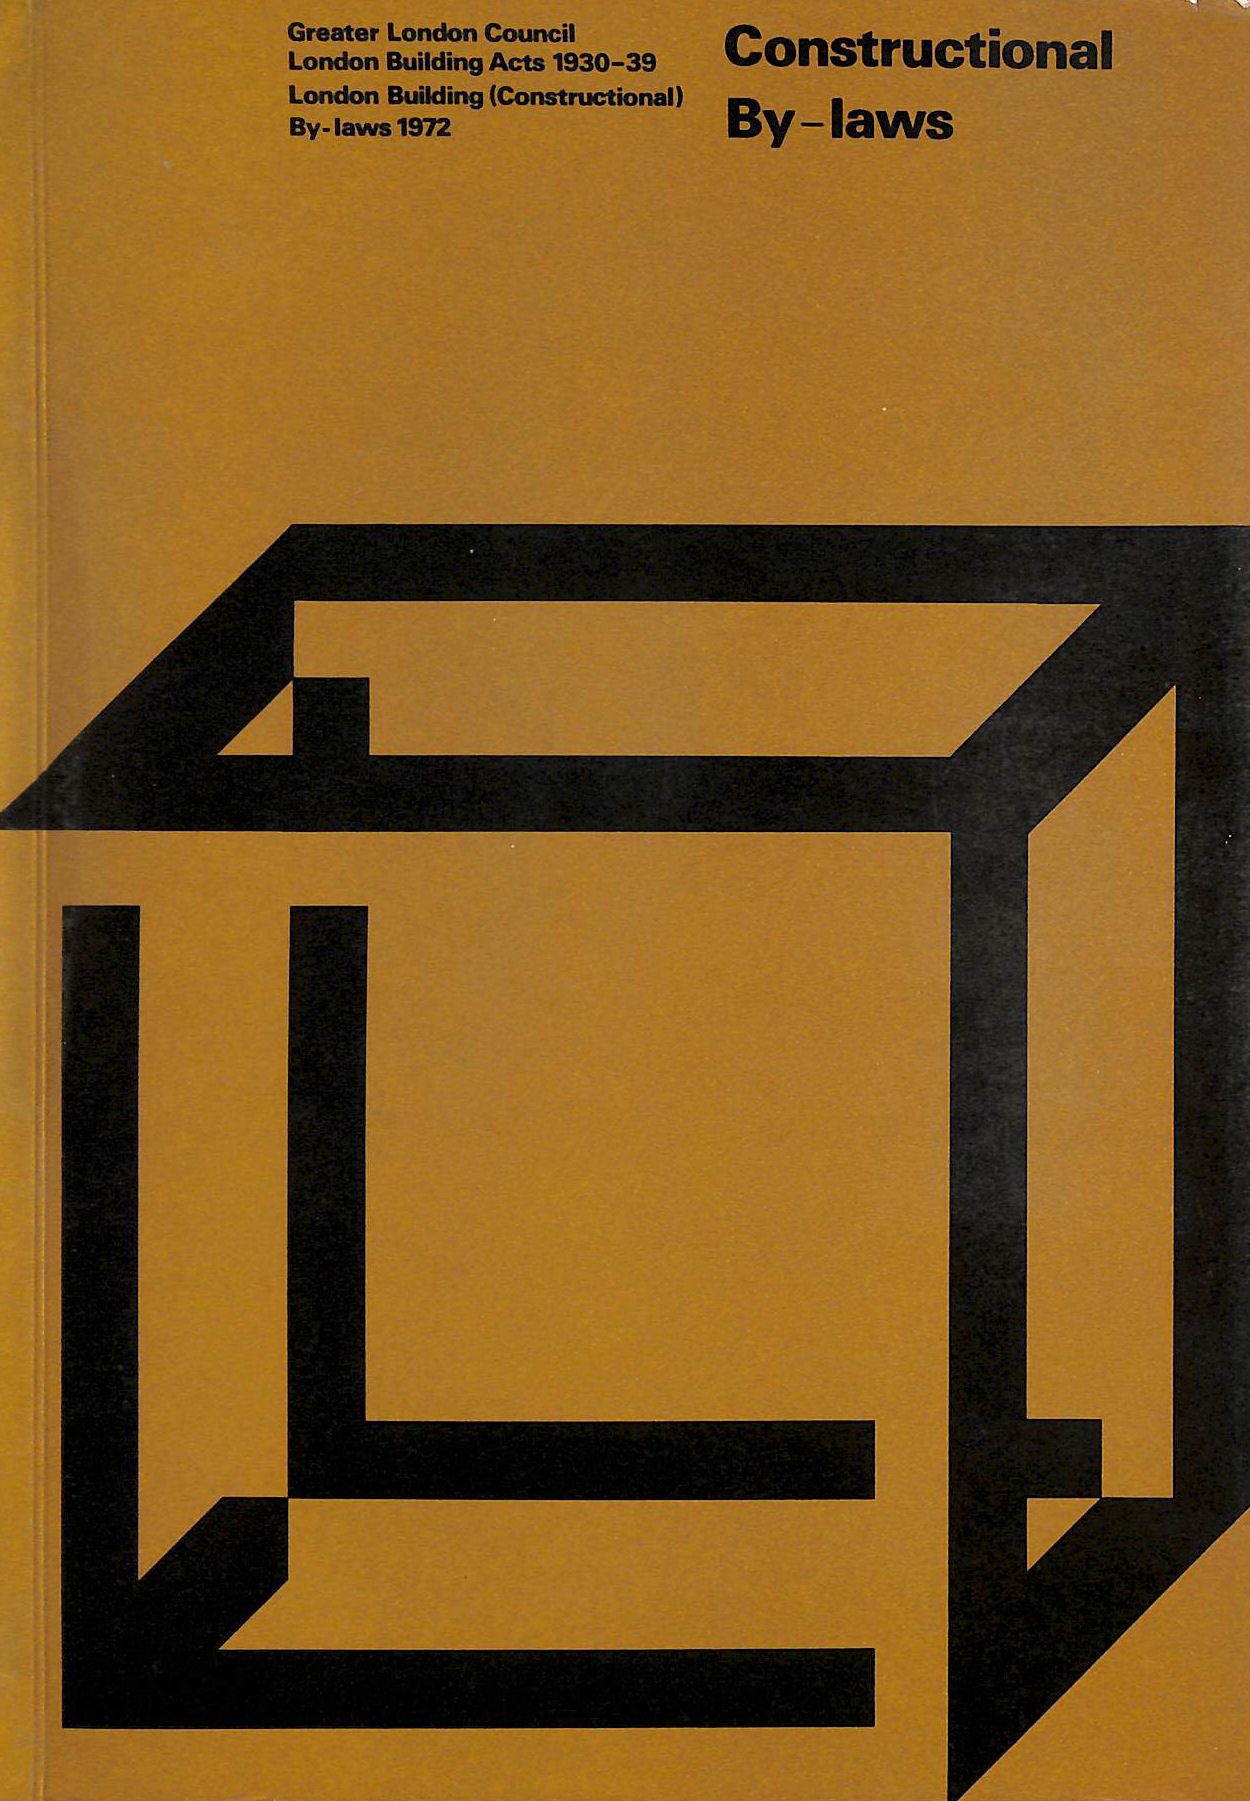 Image for London Building Constructional By-laws 1972